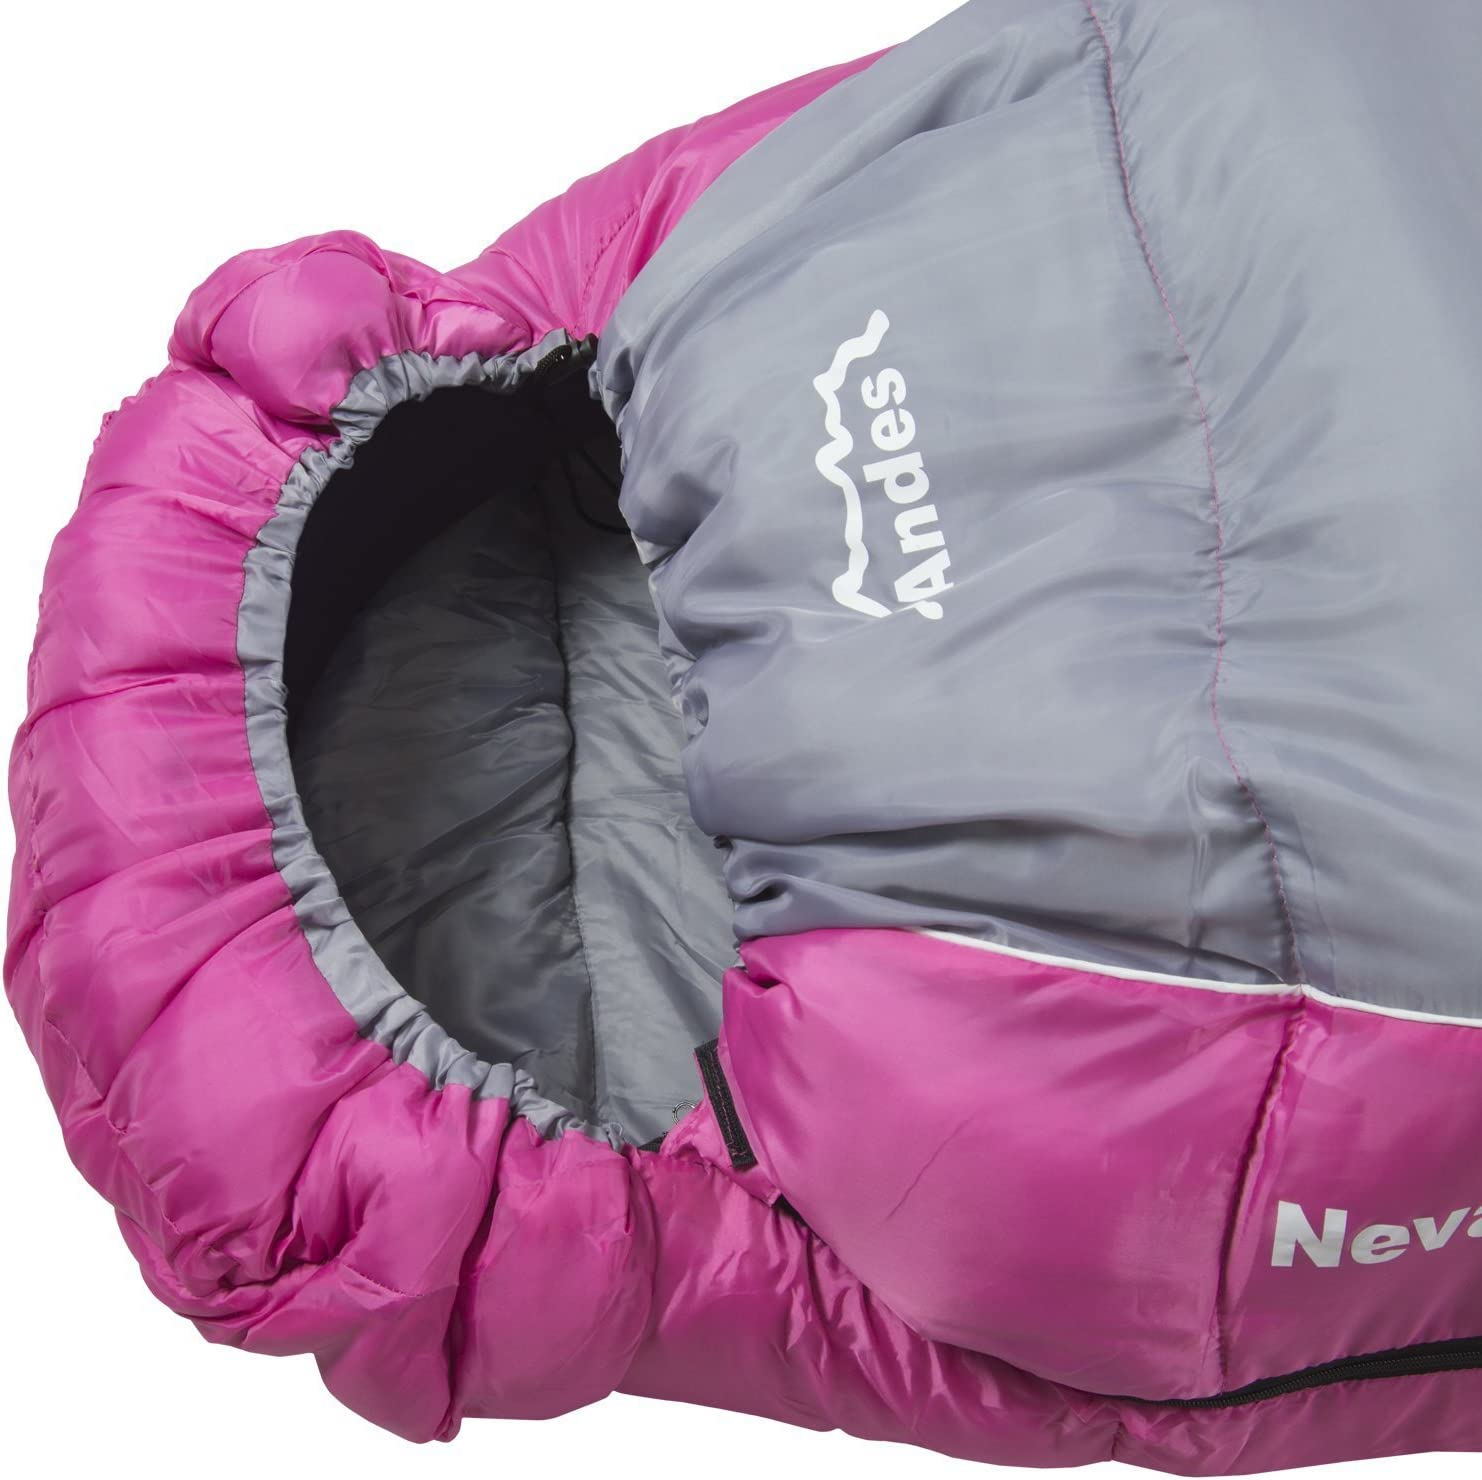 Andes Nevado 3 Season Mummy Sleeping Bag Warm 300GSM Filling Hiking Ideal For Camping Backpacking Festivals Compression Carry Bag Included